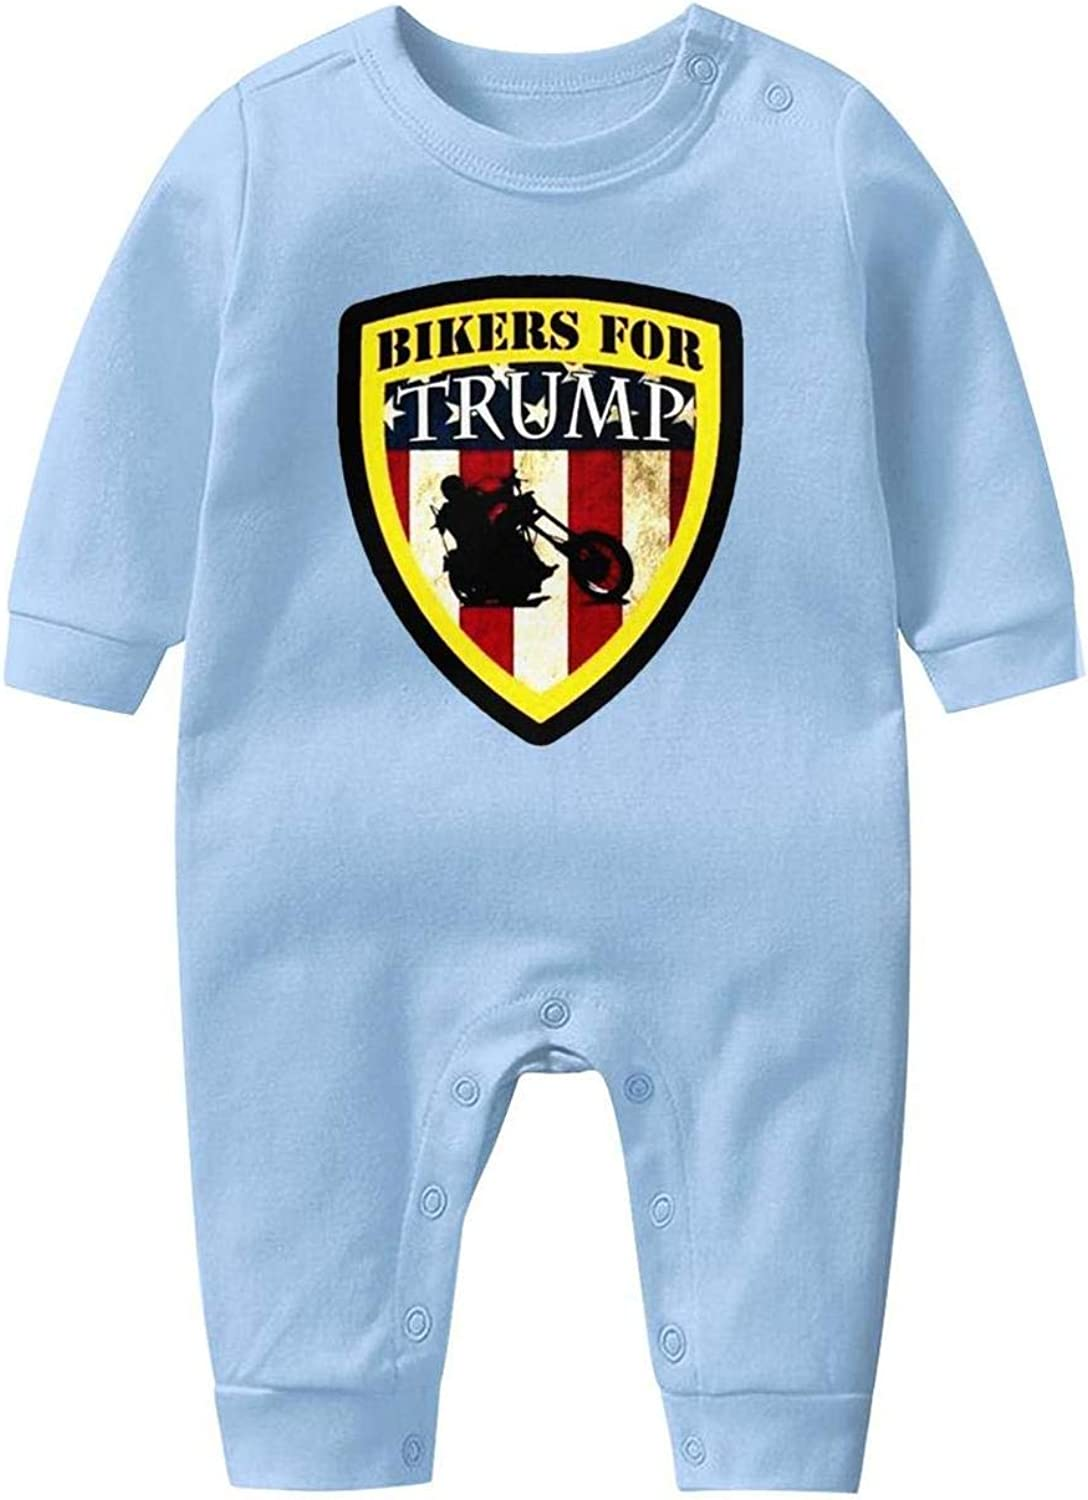 kanidjkd Bikers for Trump 2020 Baby Boys Girls Long Sleeve Baby Onesie Baby Romper